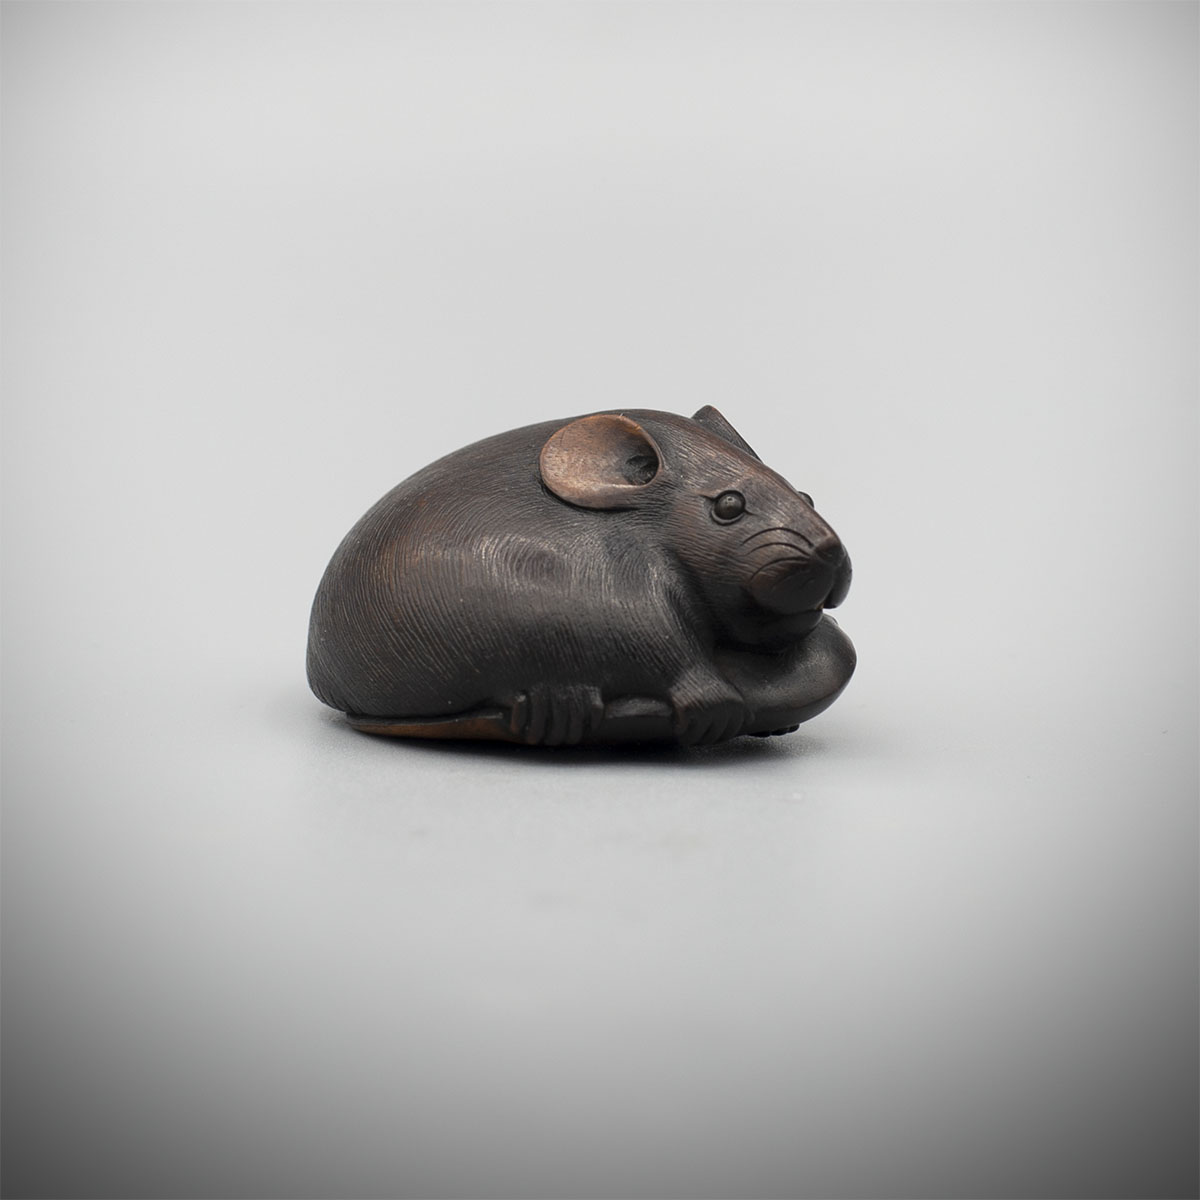 Wood Netsuke of a Rat by Futatomo, MR3368_v1